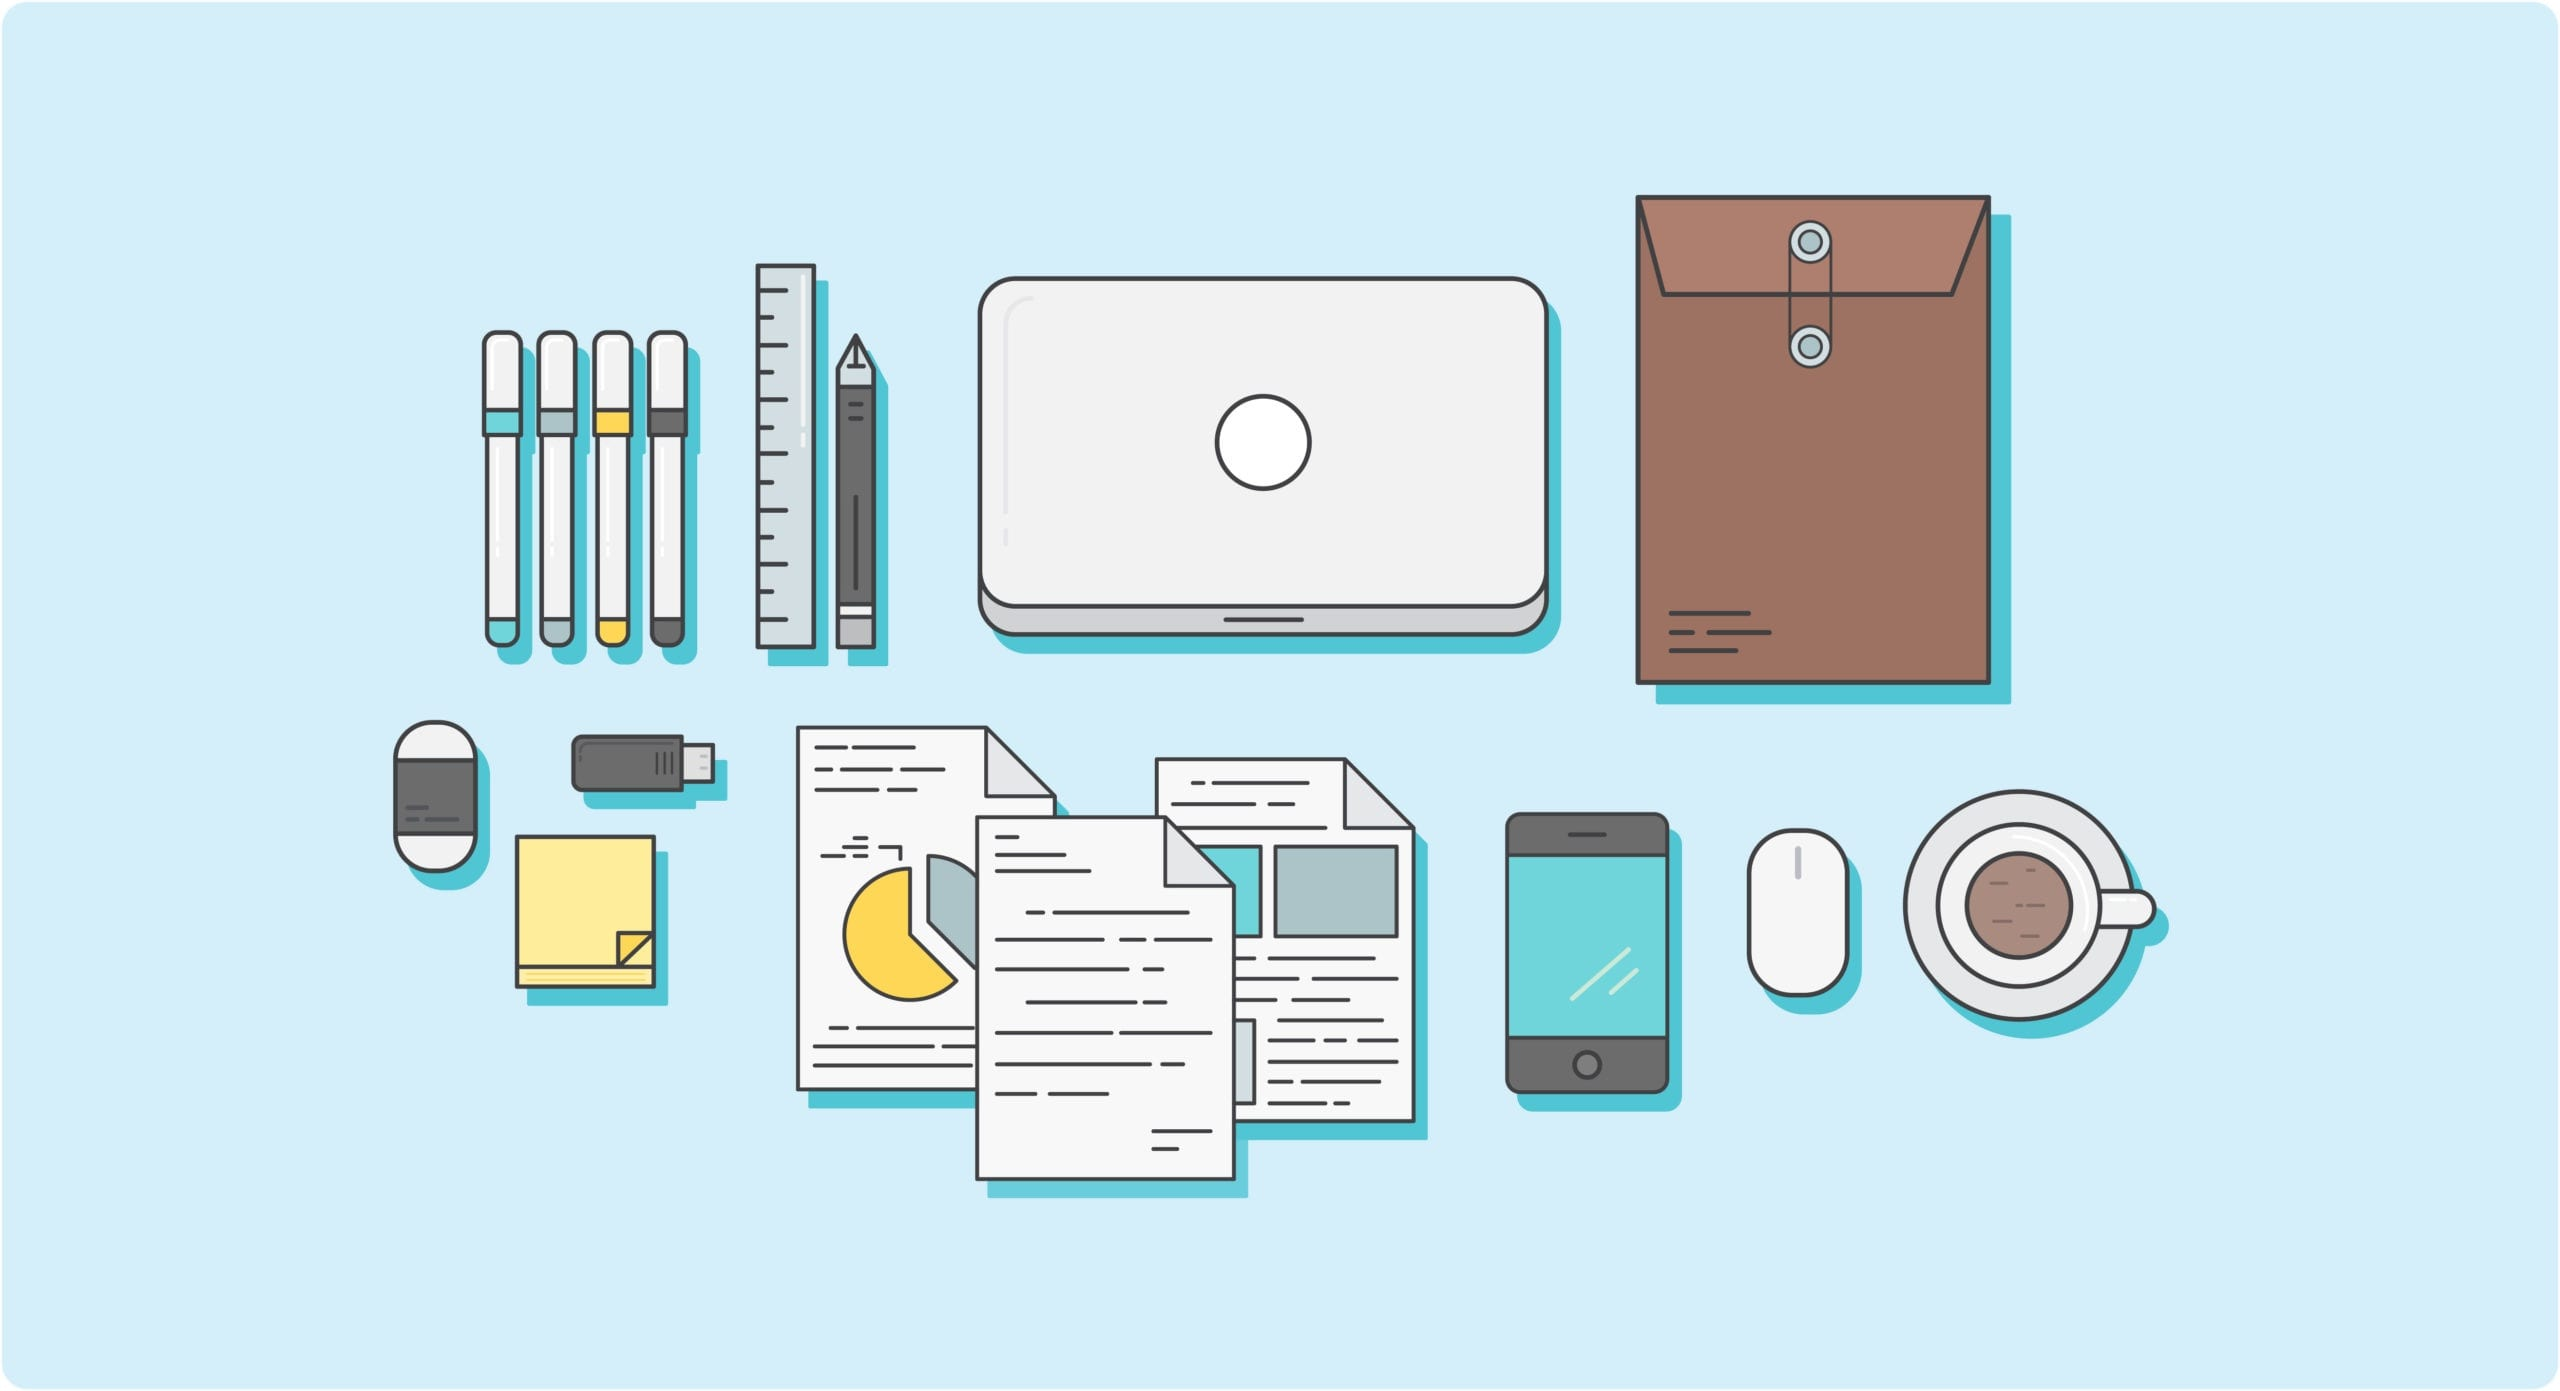 A set of tools for creating content on desk. Including papers, laptop, phone, documents, sticky notes, coffee, and more.